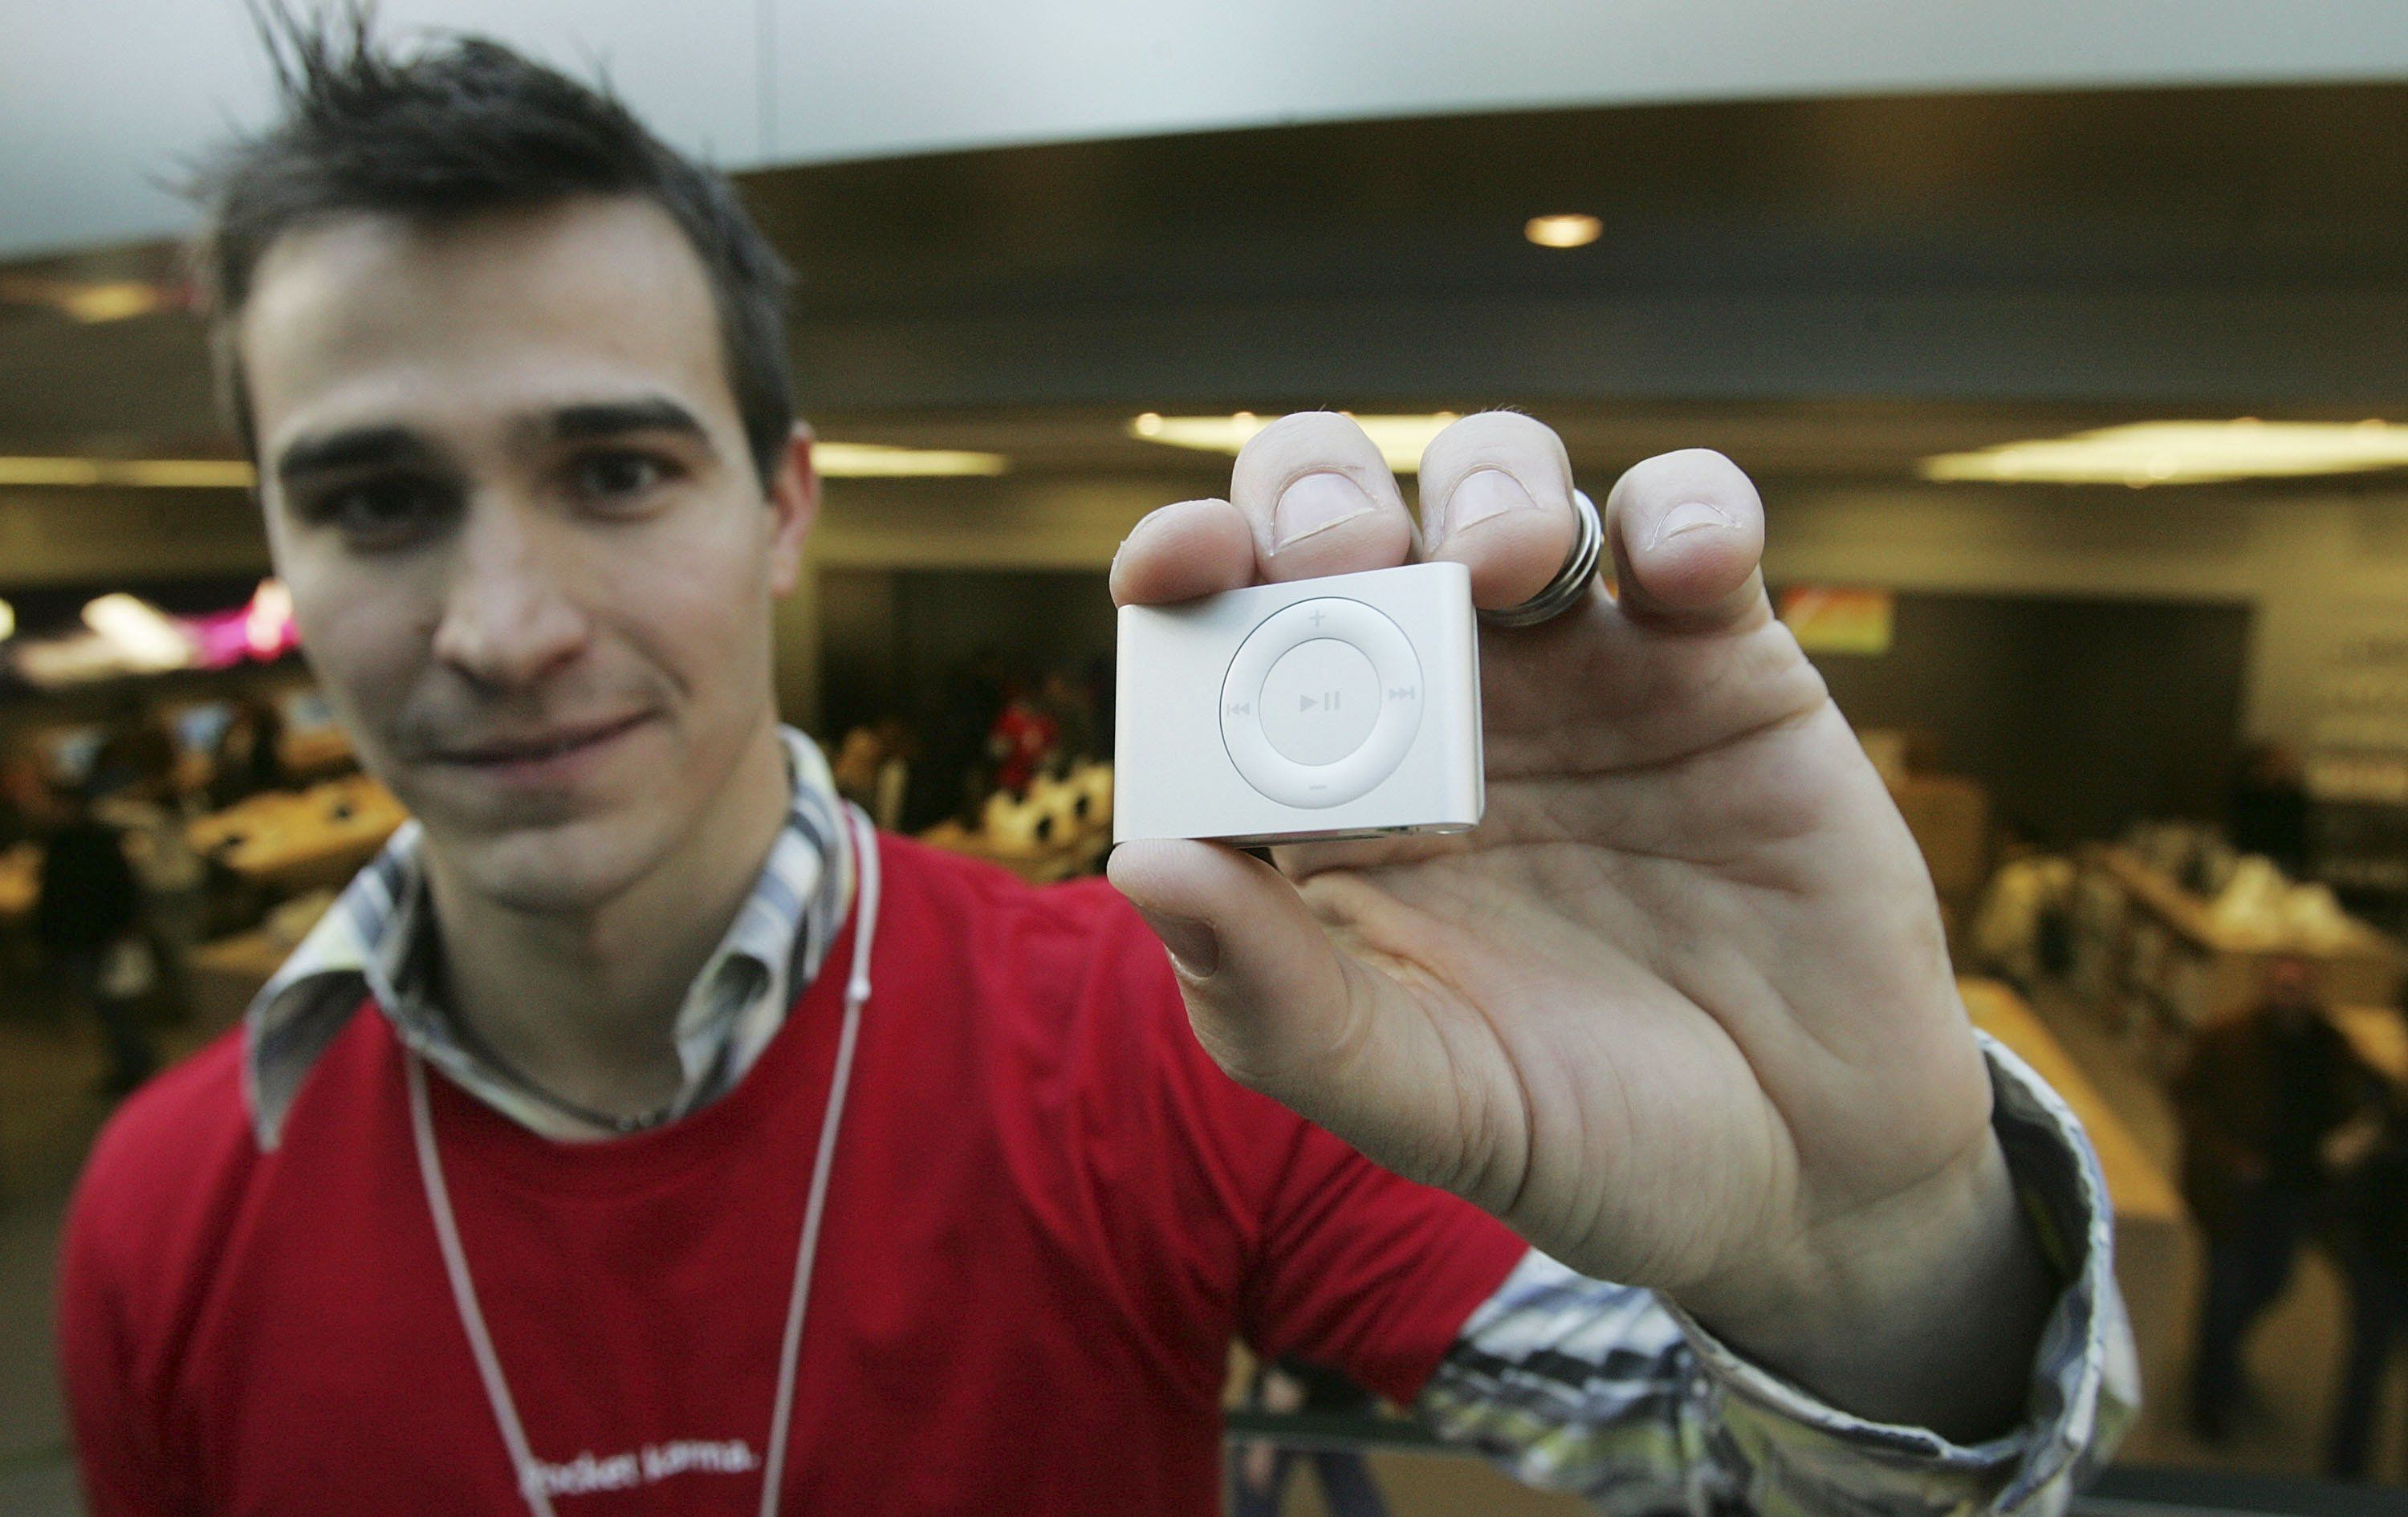 Brandon Schoderbek displays the iPod shuffle in this 2006 file photo.